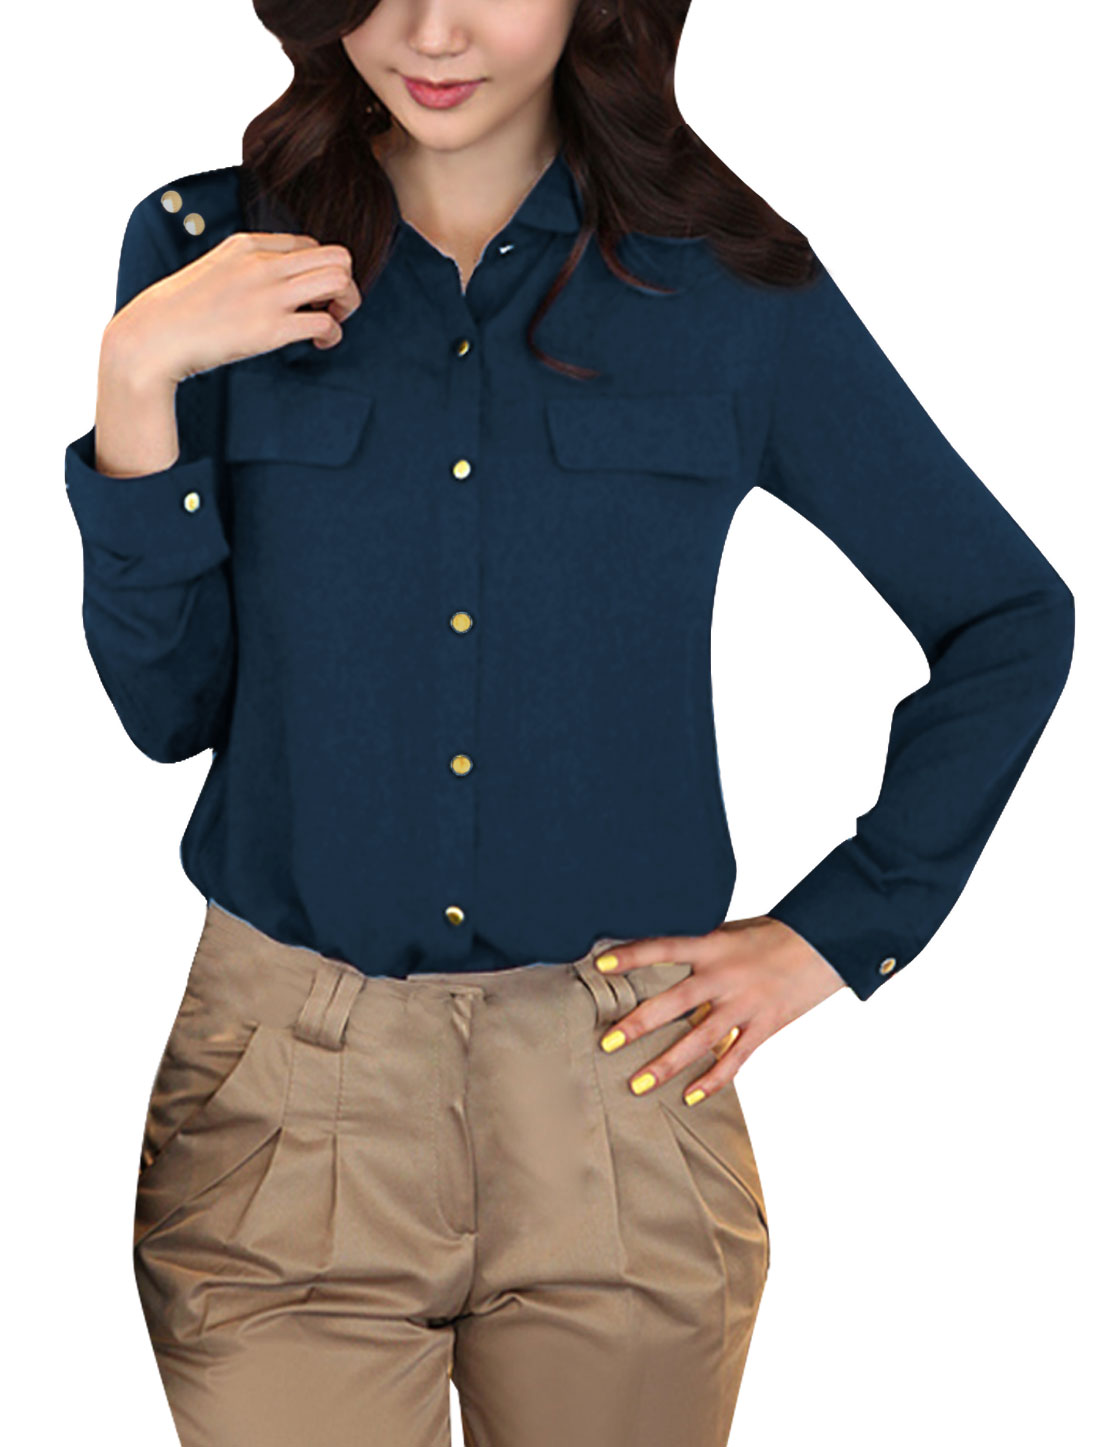 Stylish Dark Blue Fake Chest Pockets Design Button Down Shirt for Lady XL